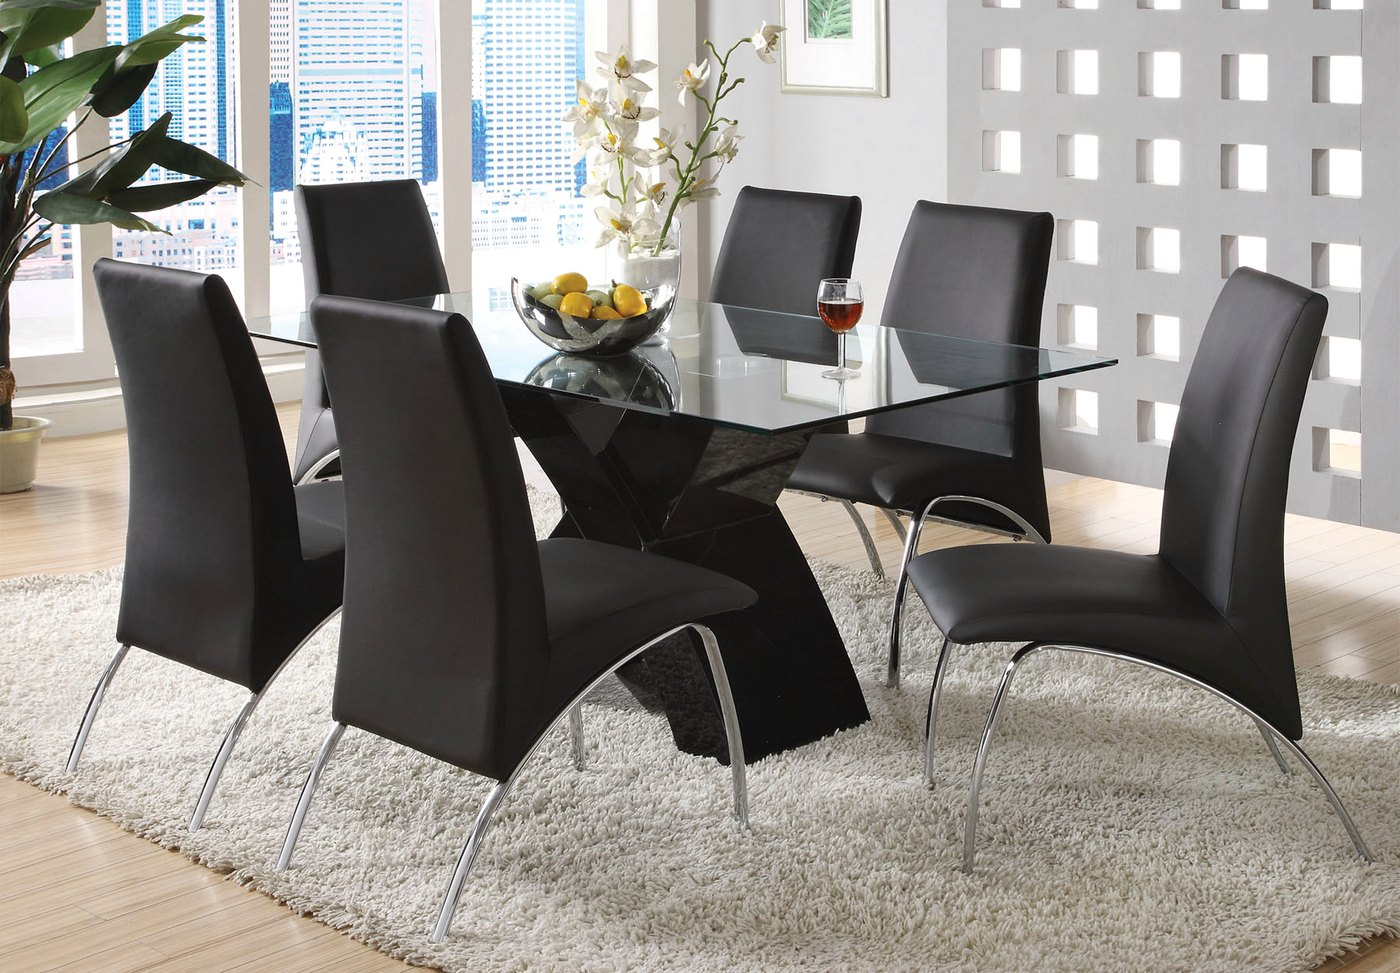 23 Small Dining Table Designs Decorating Ideas: Wailoa Contemporary Black Casual Dining Set With X-Shape